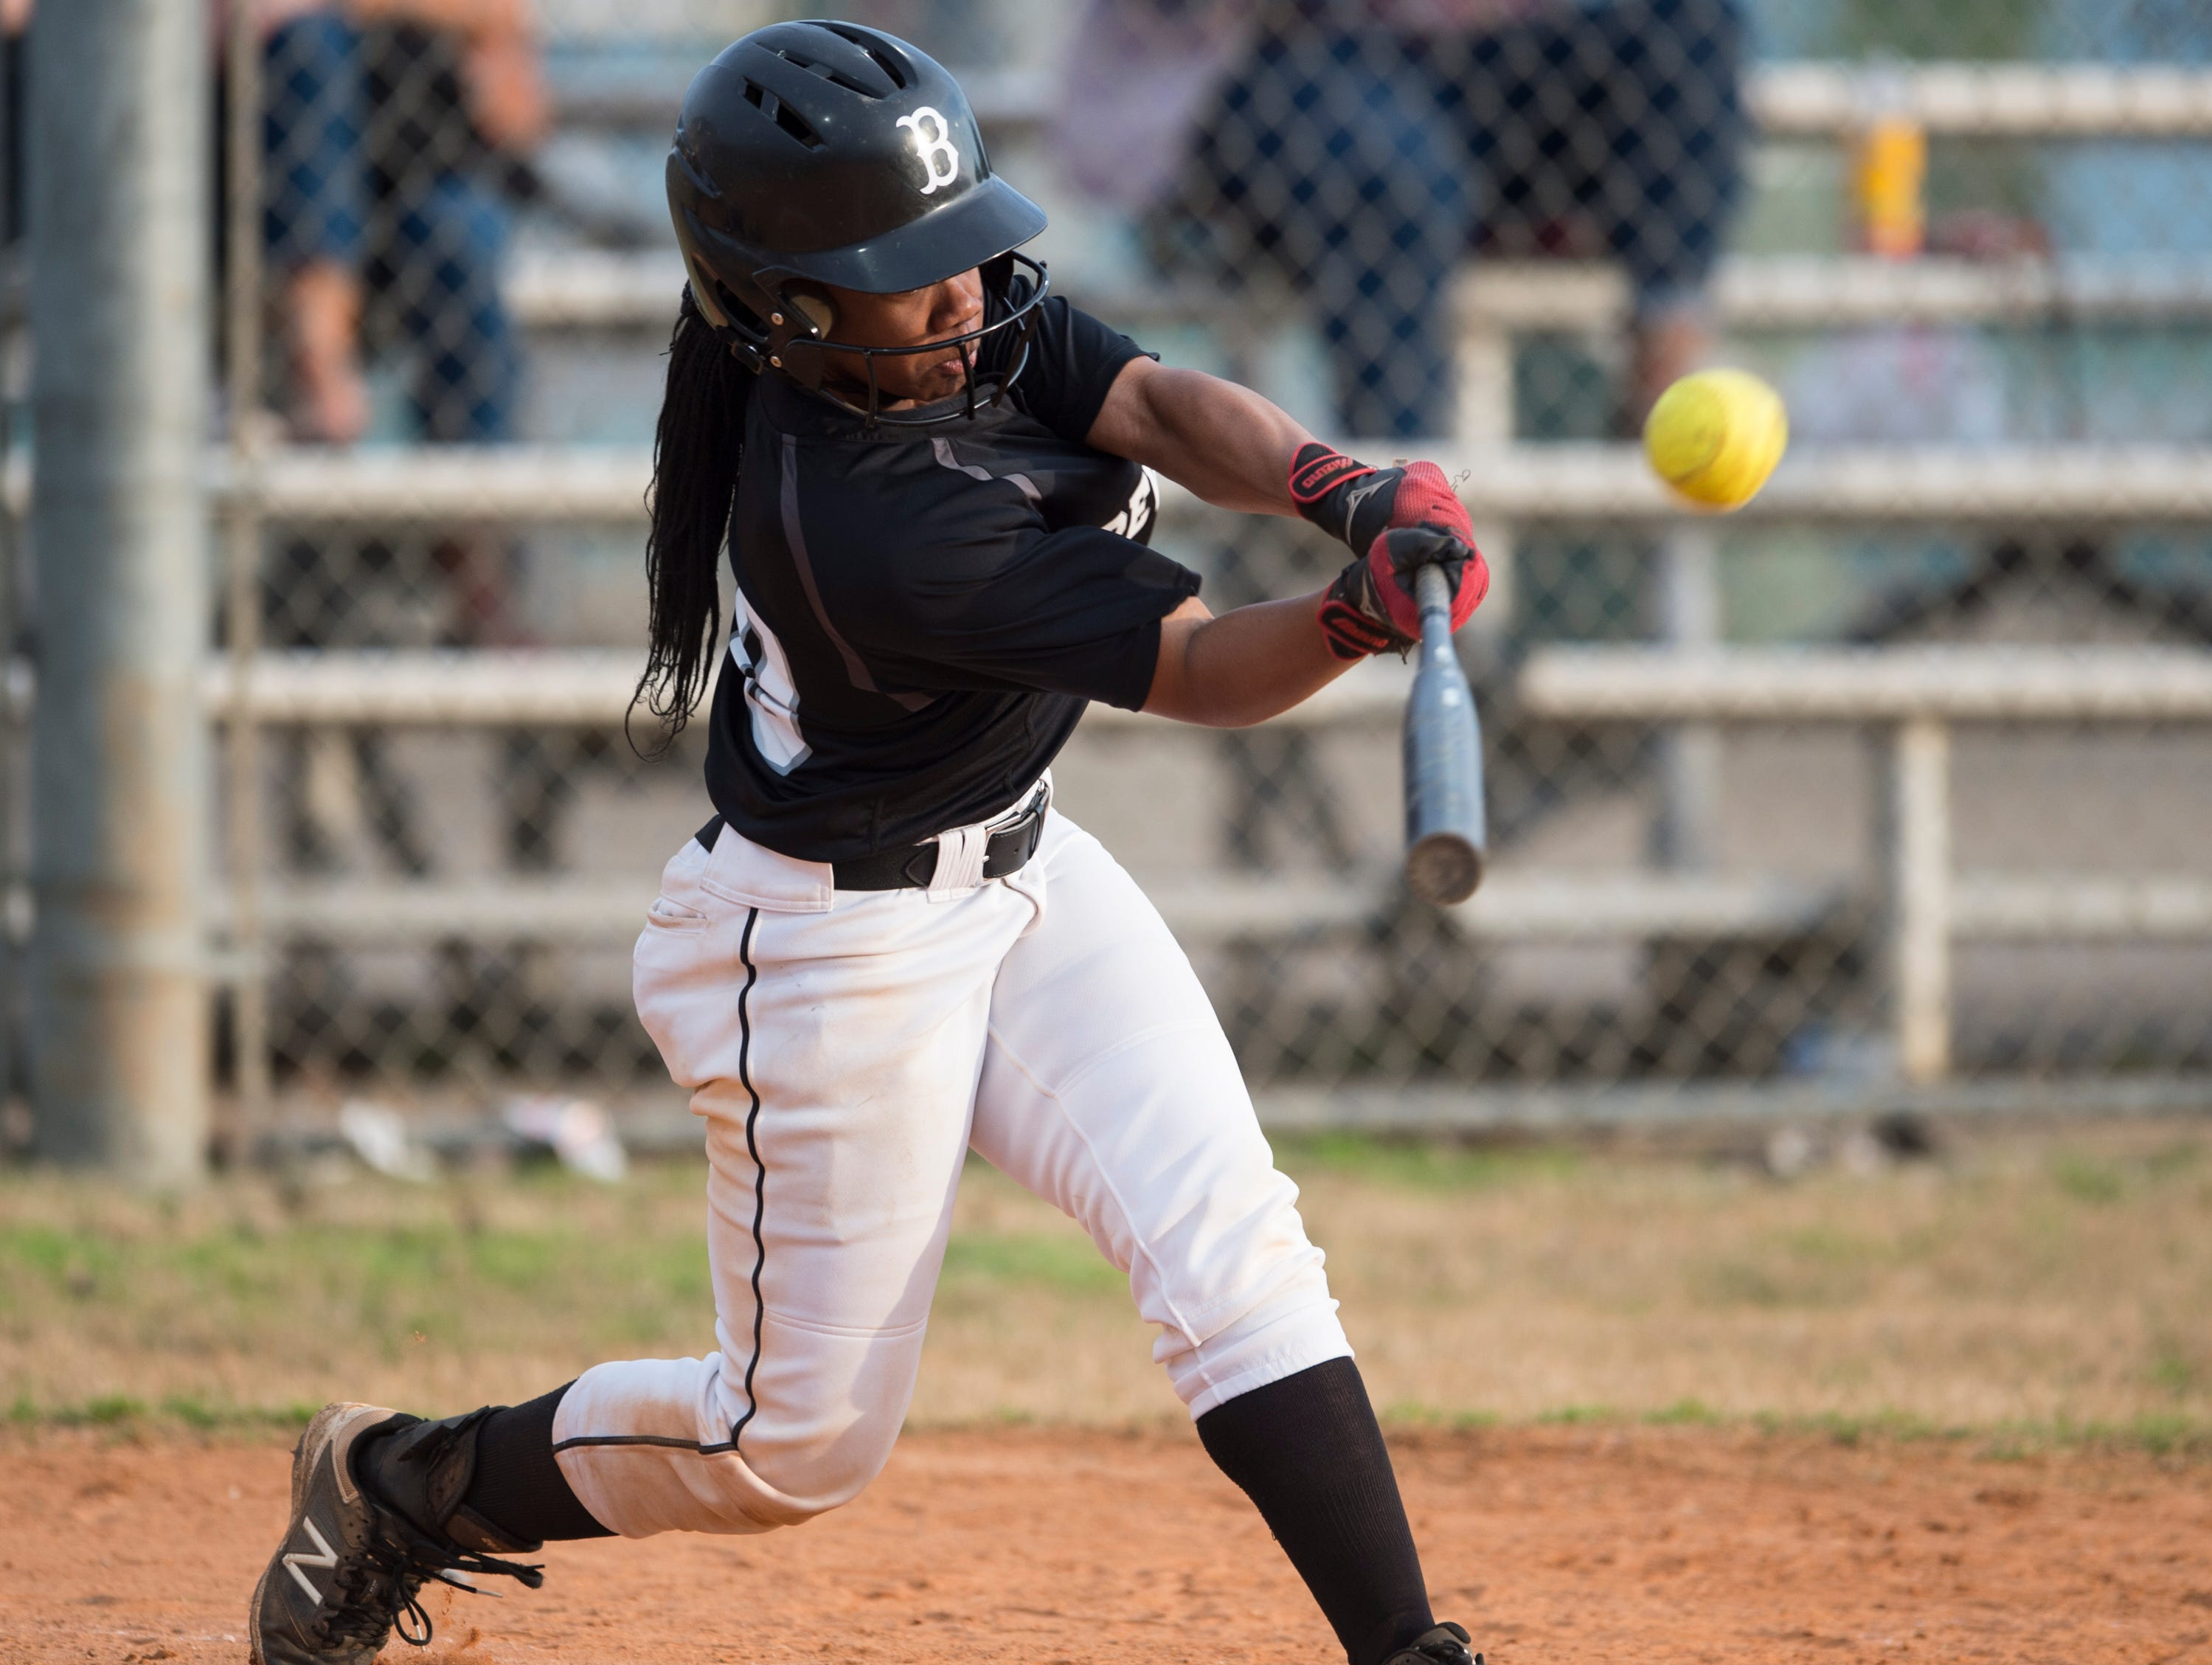 Brew Tech's Tyra Johnson (00) swings at the ball at Thompson Park in Montgomery, Ala., on Thursday, March 14, 2019. Tallassee defeated Brew Tech 7-0.